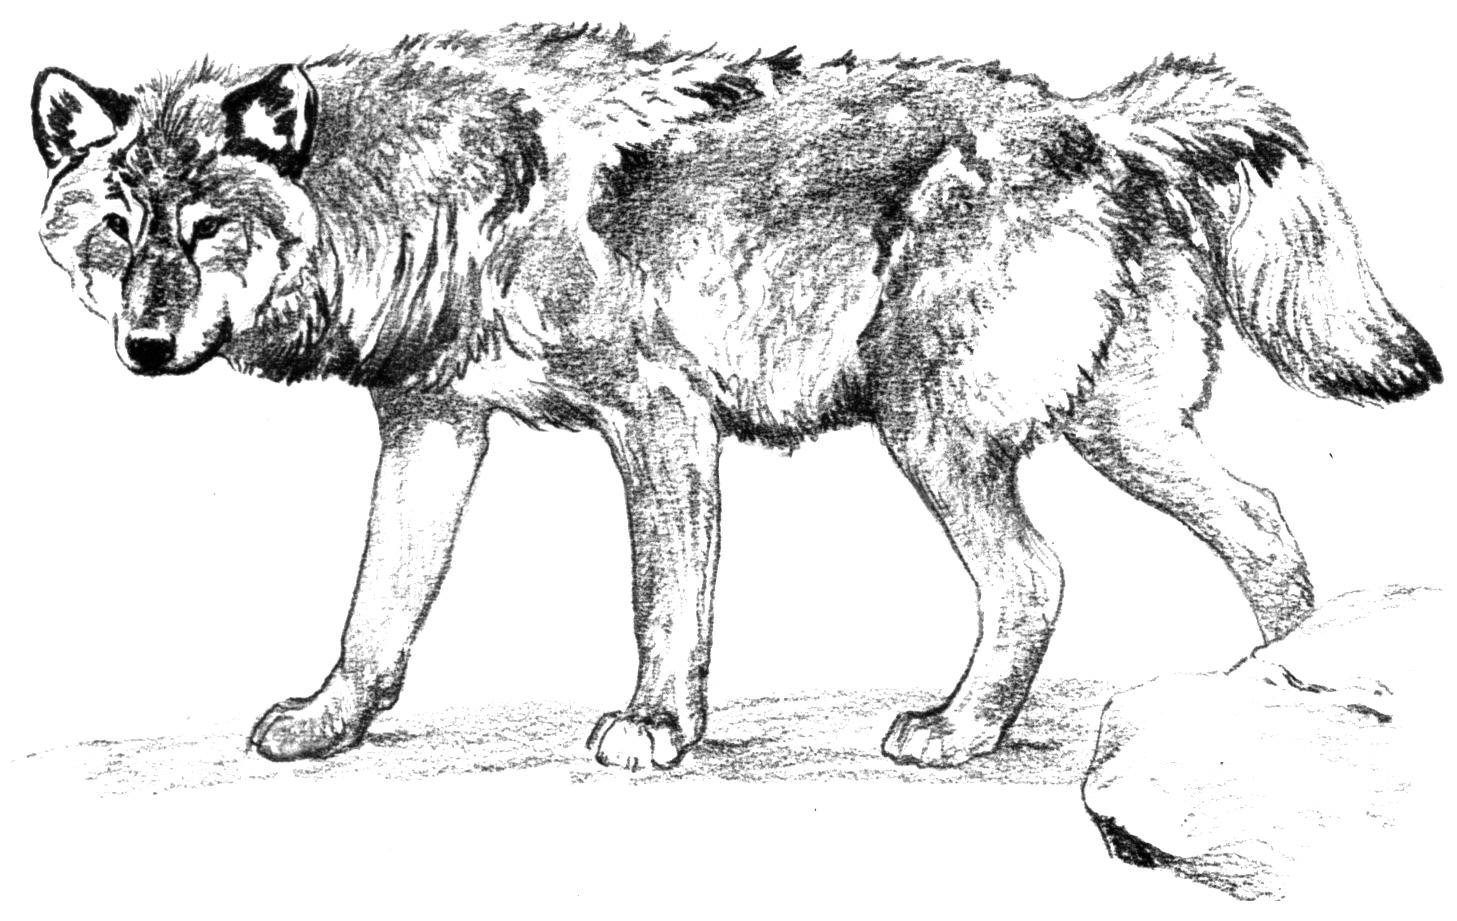 coloring picture of a wolf wolf coloring pages download and print wolf coloring pages picture wolf a of coloring